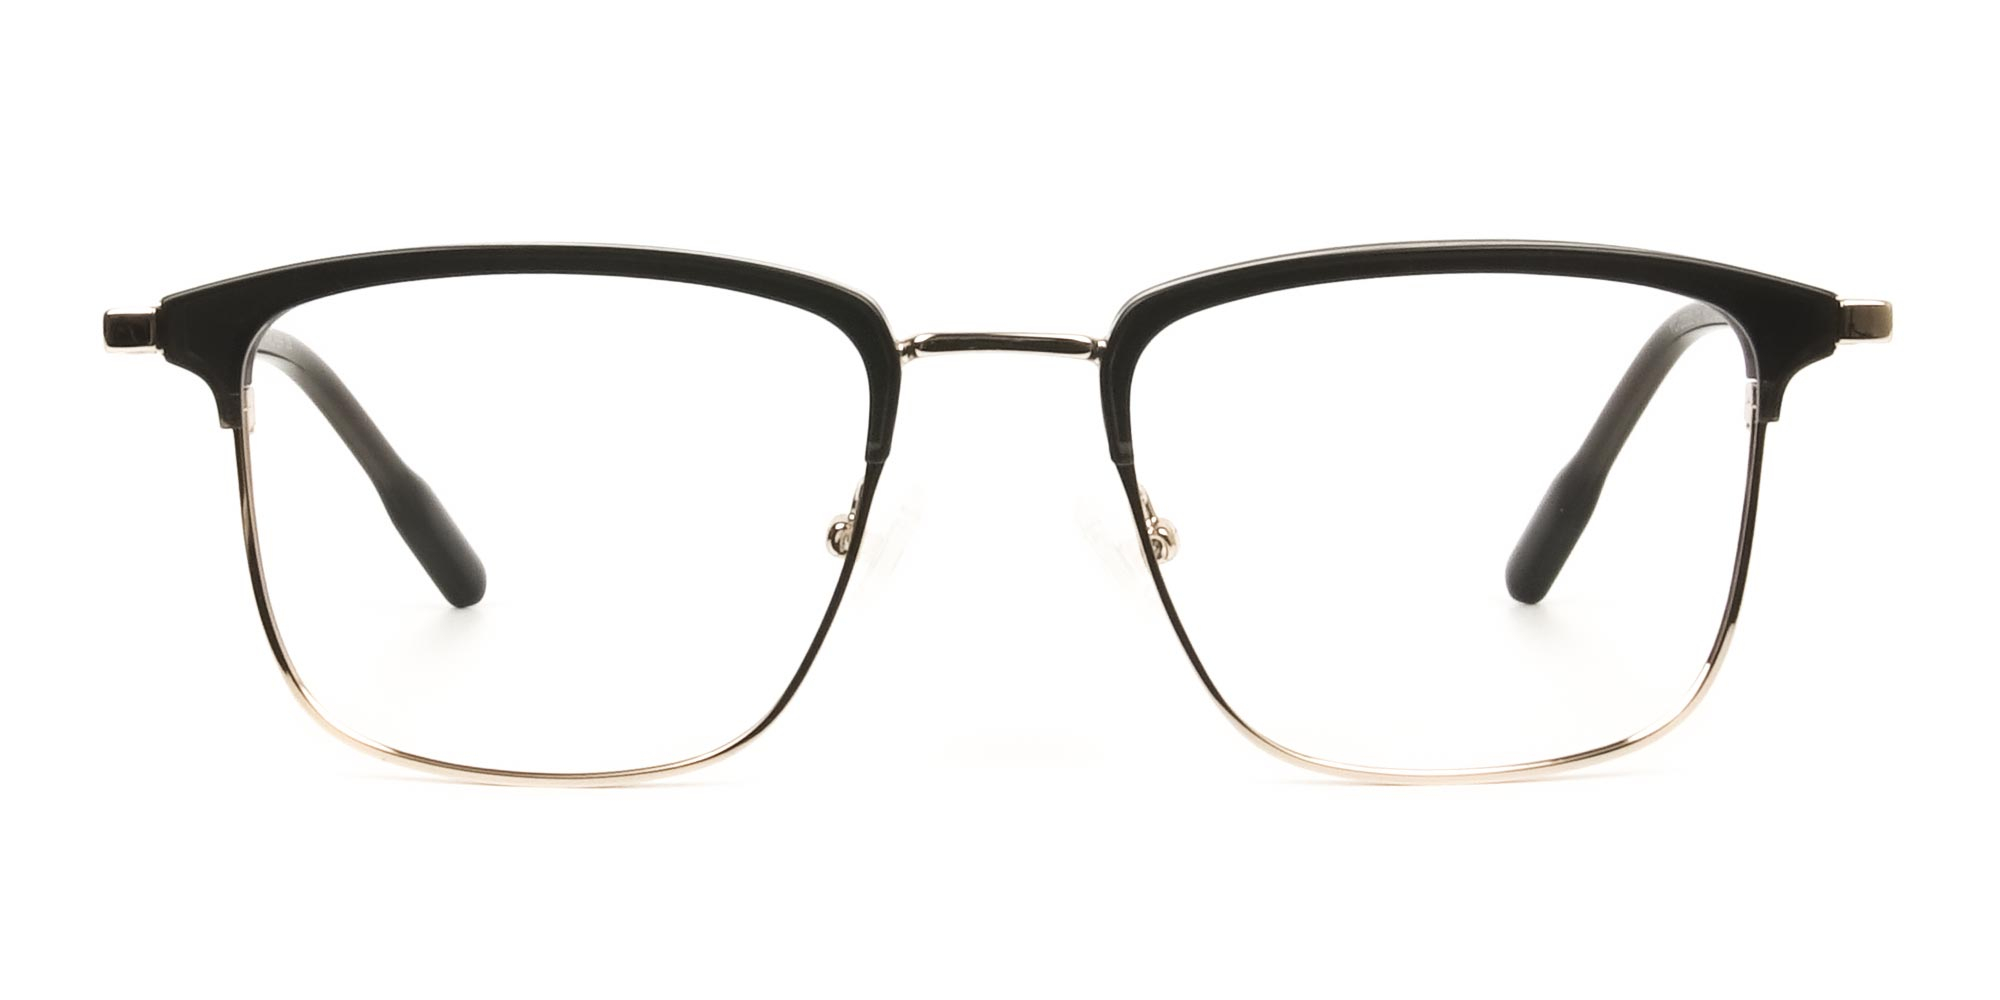 Shining Black and Gold Glasses in Browline Square